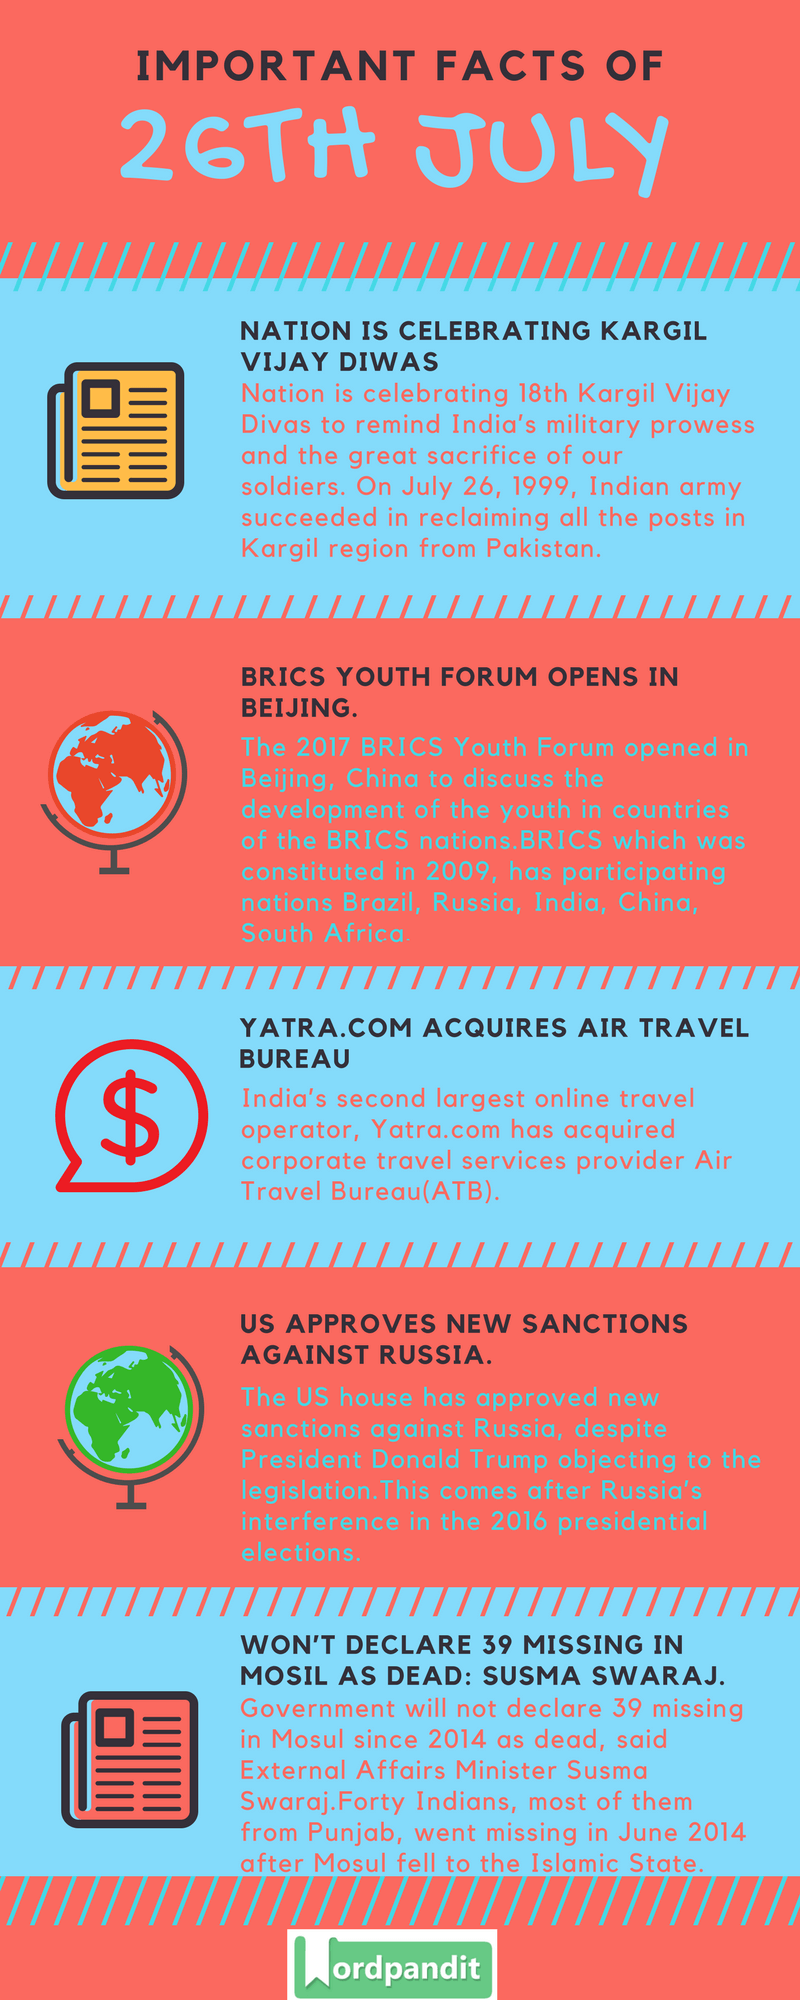 Daily-Current-Affairs-26-july-2017-Current-Affairs-Quiz-july-26-2017-Current-Affairs-Infographic